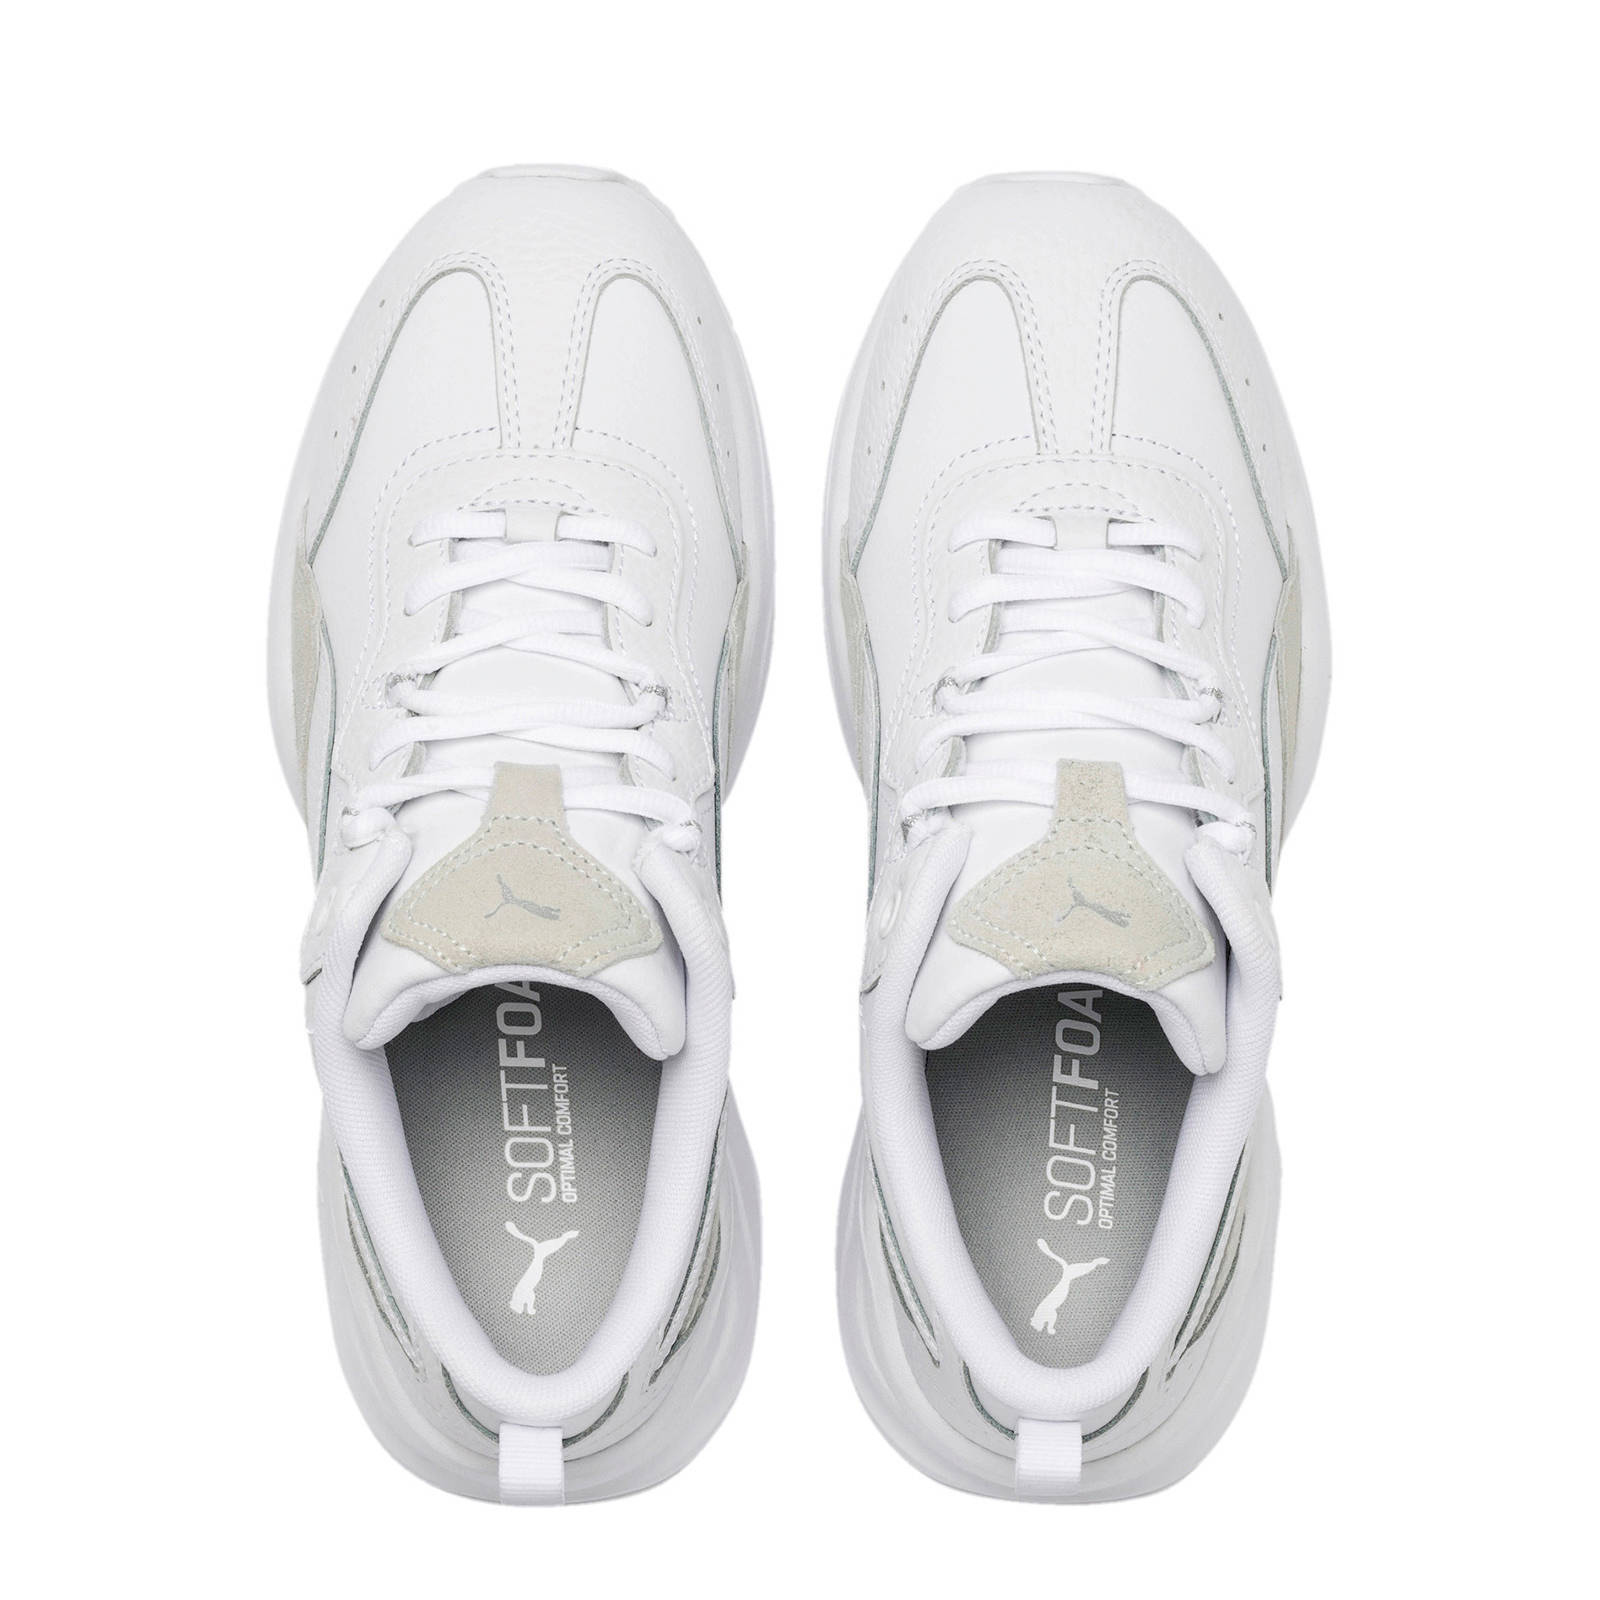 Puma Cilia Lux sneakers wit | wehkamp